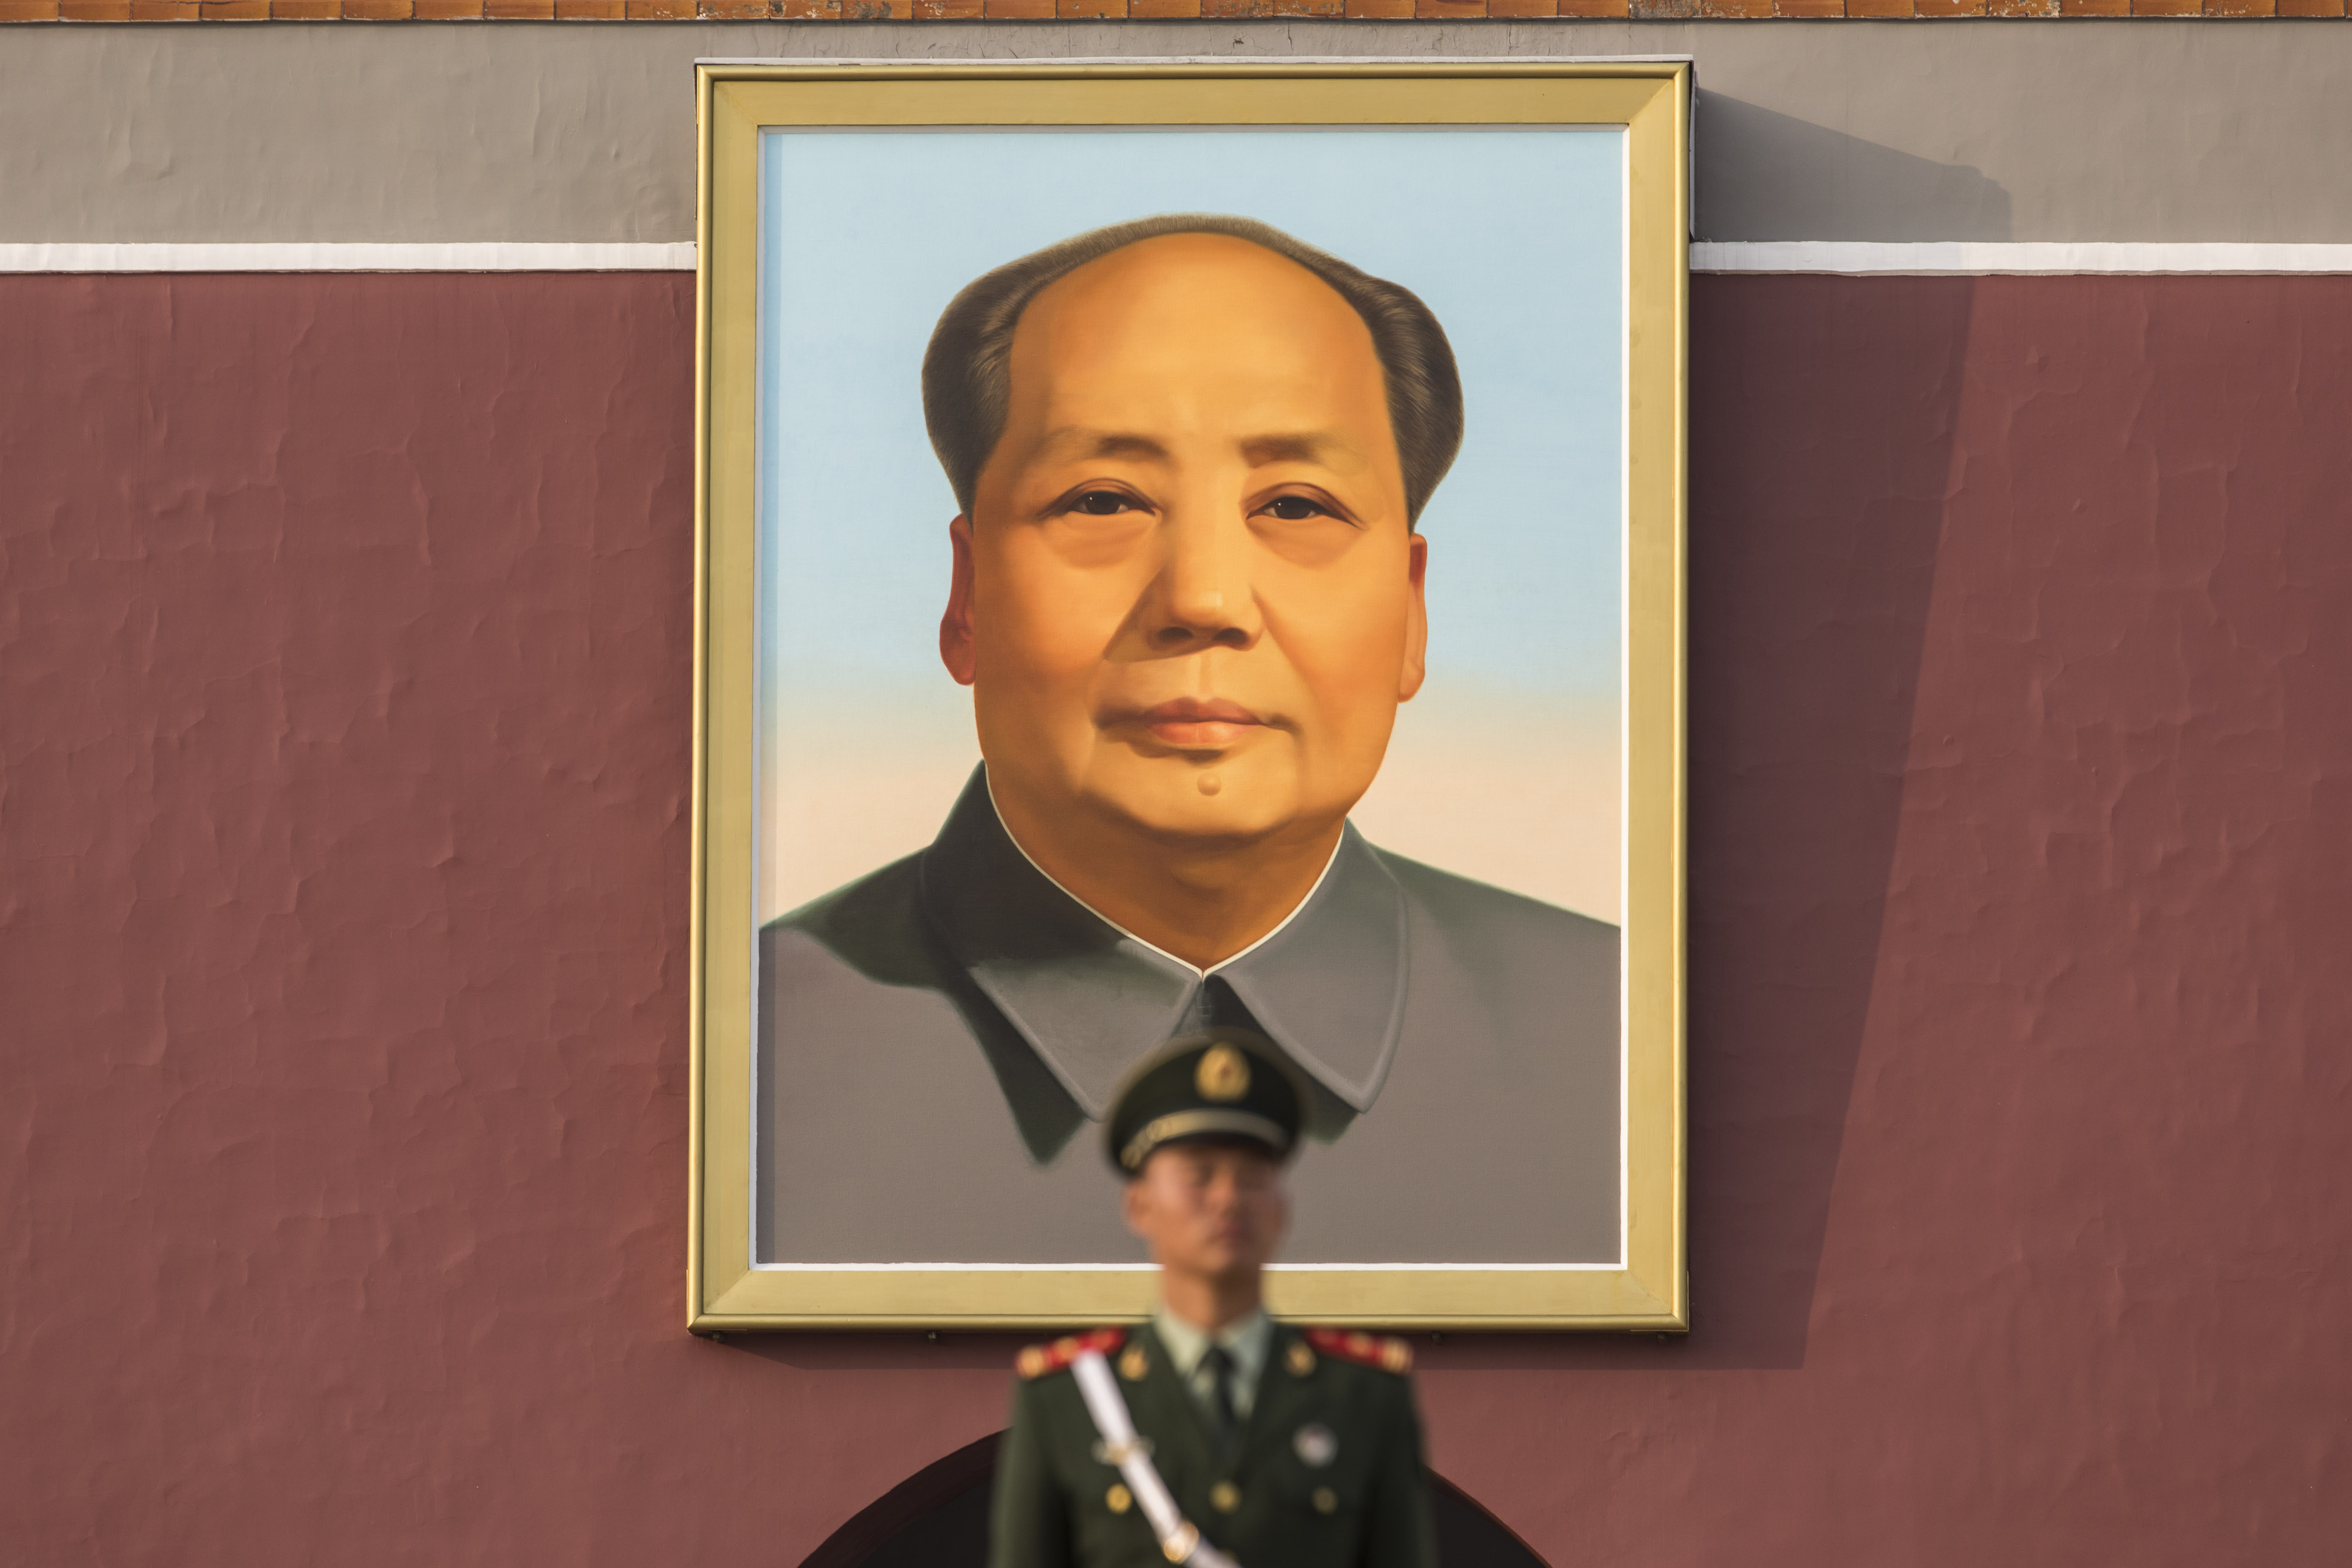 A portrait of former Chinese leader Mao Zedong at Tiananmen Square in Beijing, China on Oct 16, 2017.  An actor who impersonated  Mao at a conference on blockchain technology in China, sparked outrage.